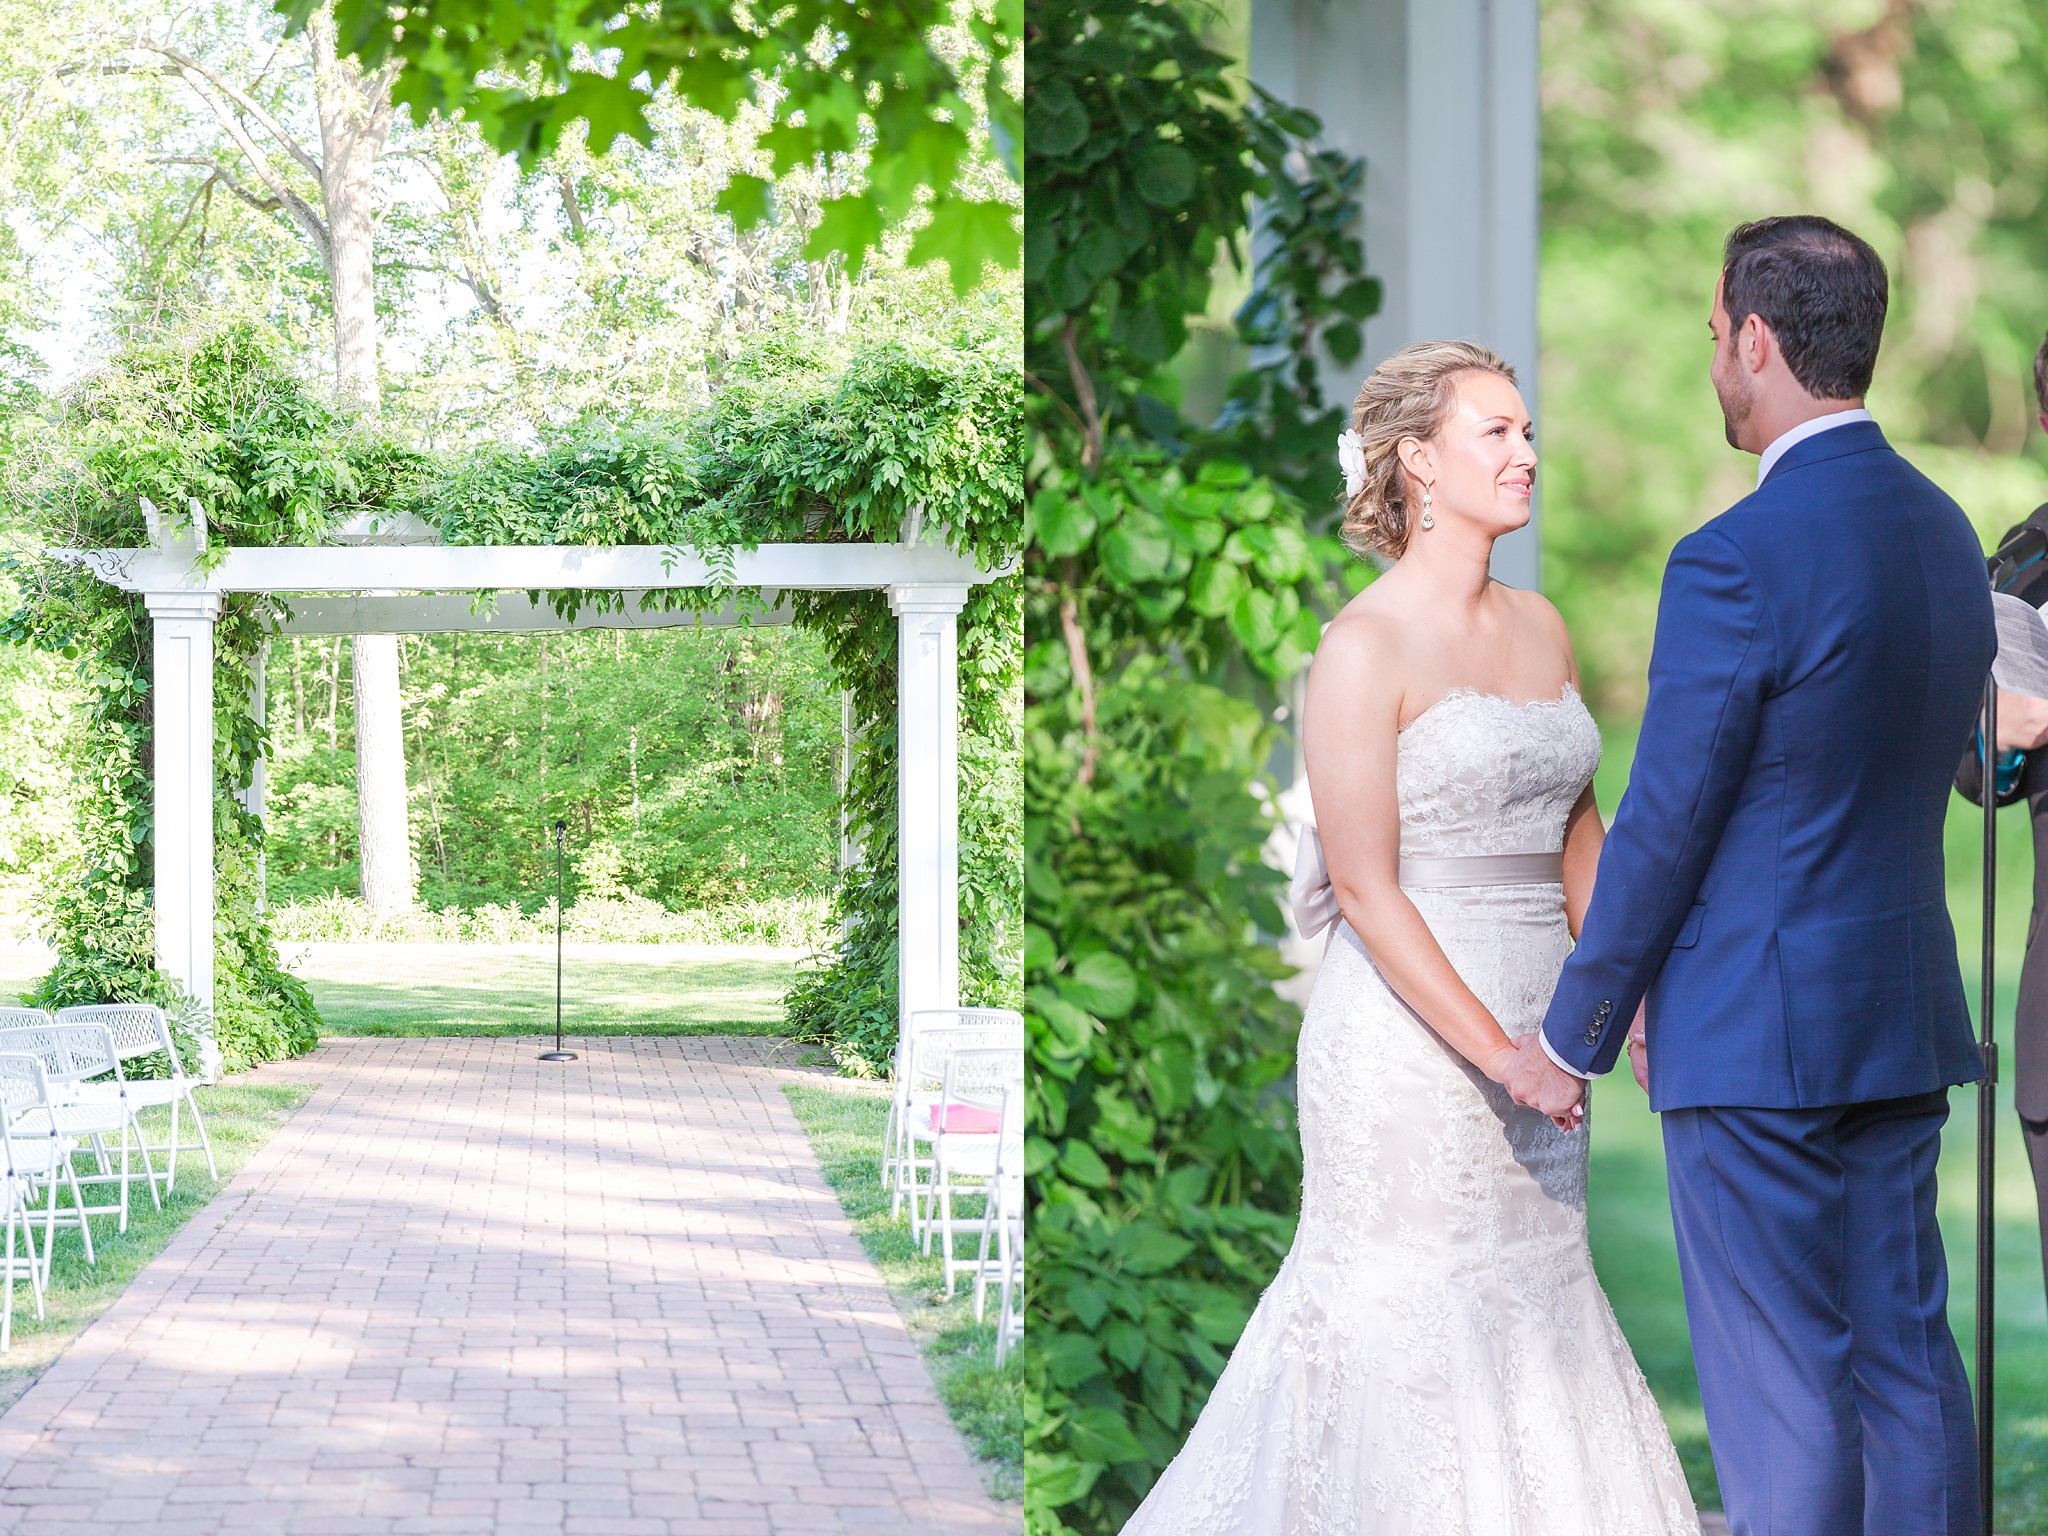 fun-candid-laid-back-wedding-photos-at-wellers-carriage-house-in-saline-michigan-and-at-the-eagle-crest-golf-resort-by-courtney-carolyn-photography_0066.jpg